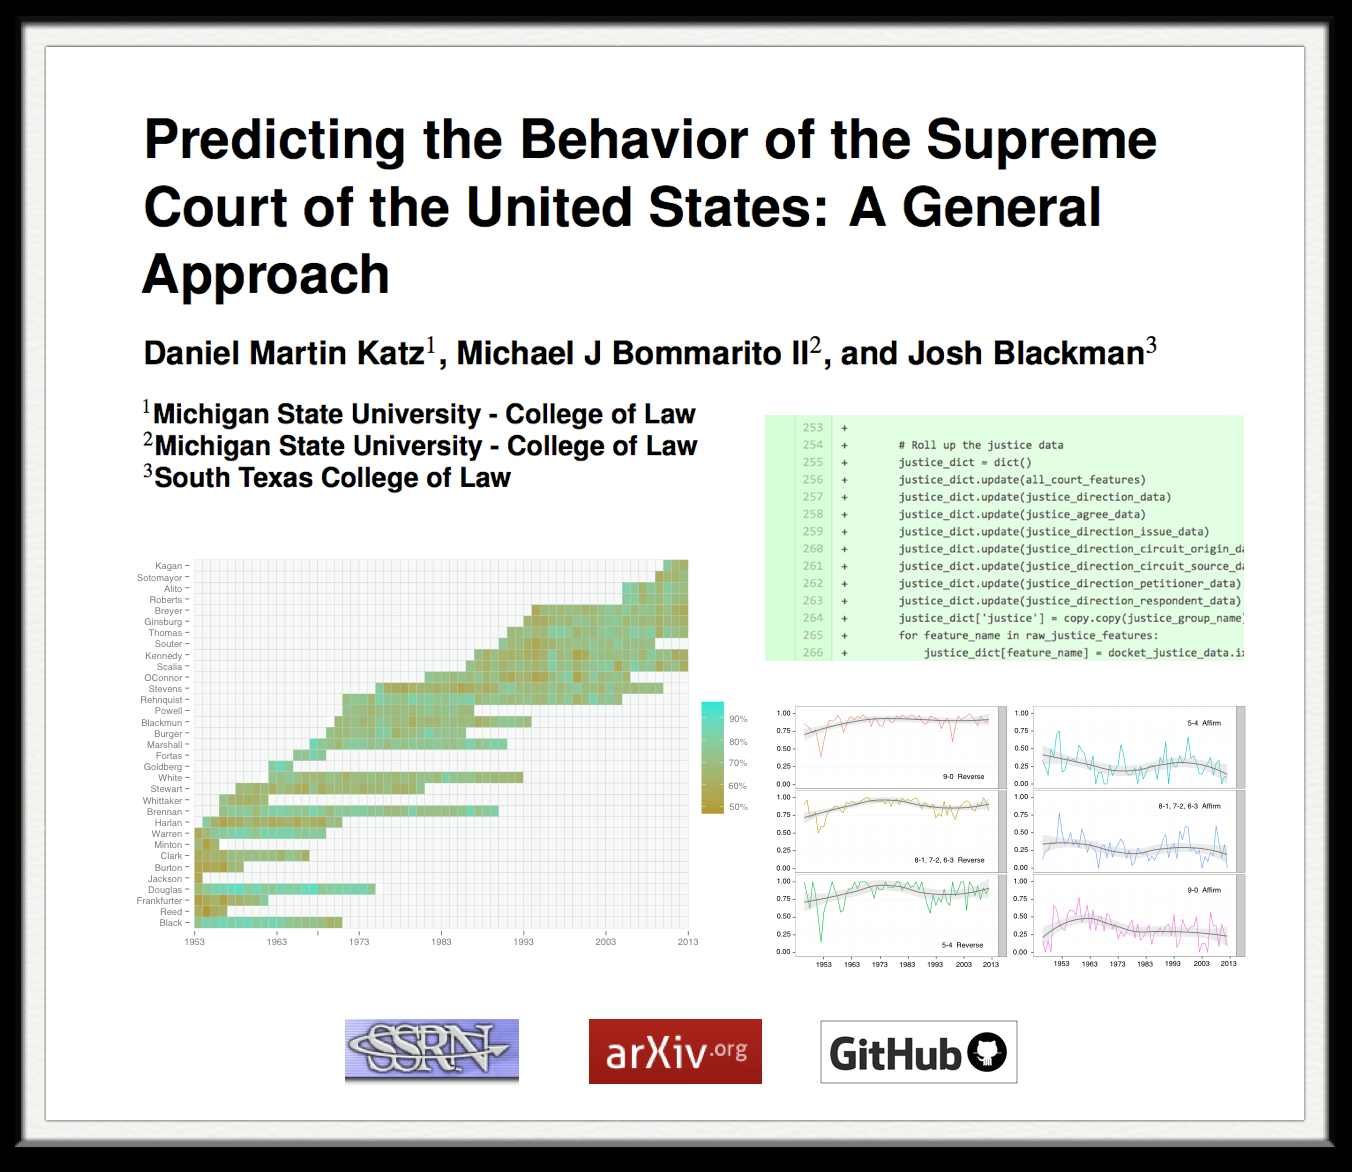 SCOTUS Prediction Model